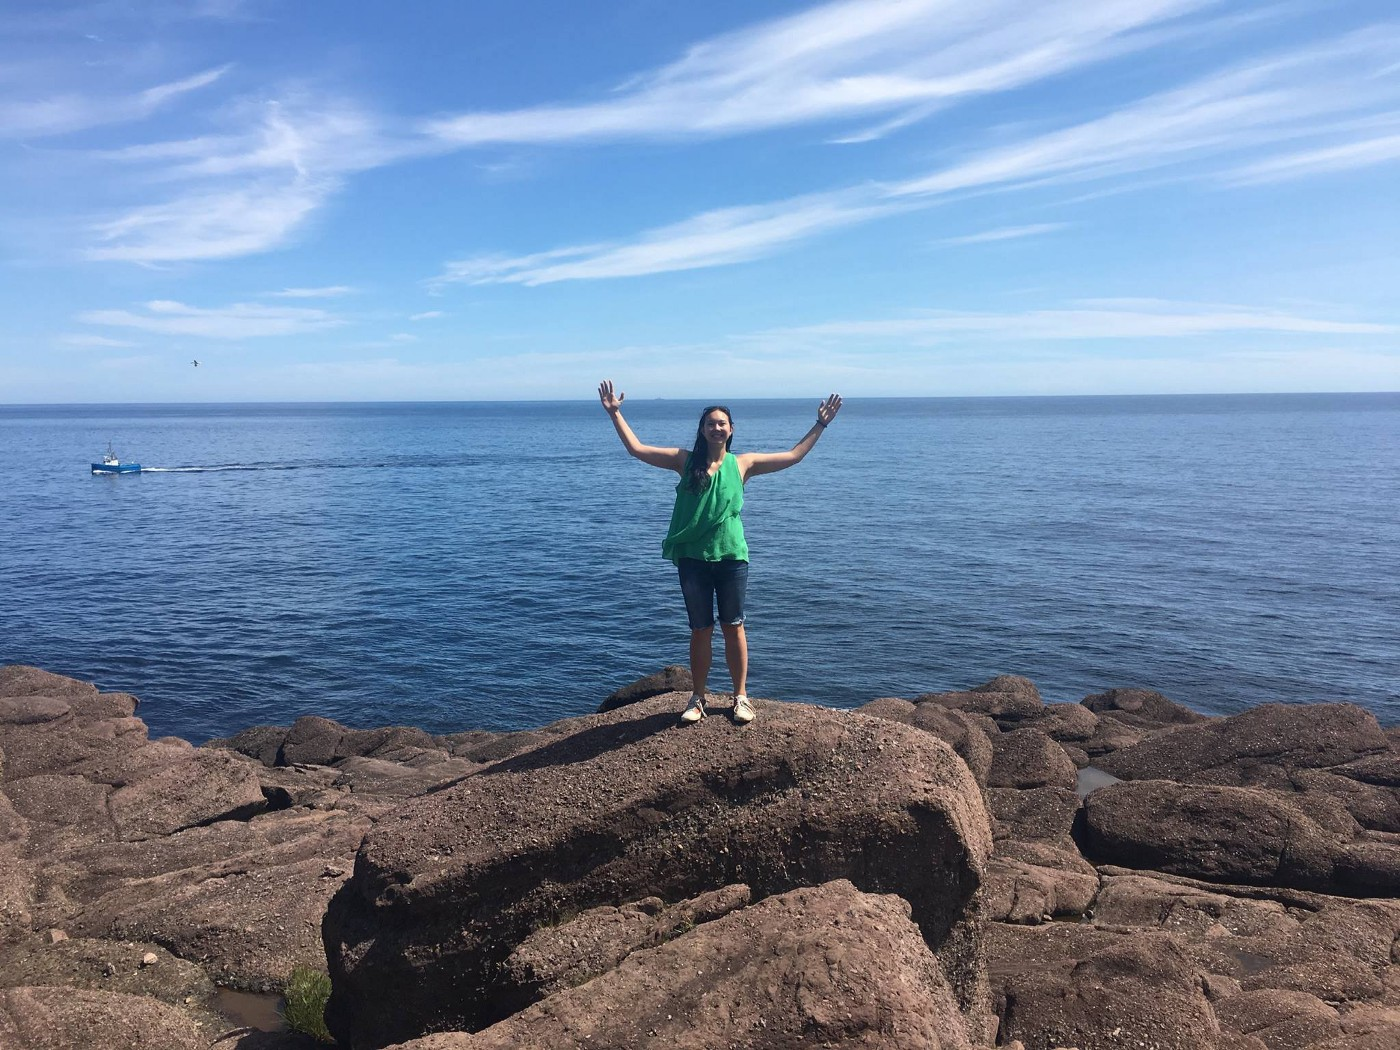 The author stands on a rock with her arms in the air. The ocean is in the background.